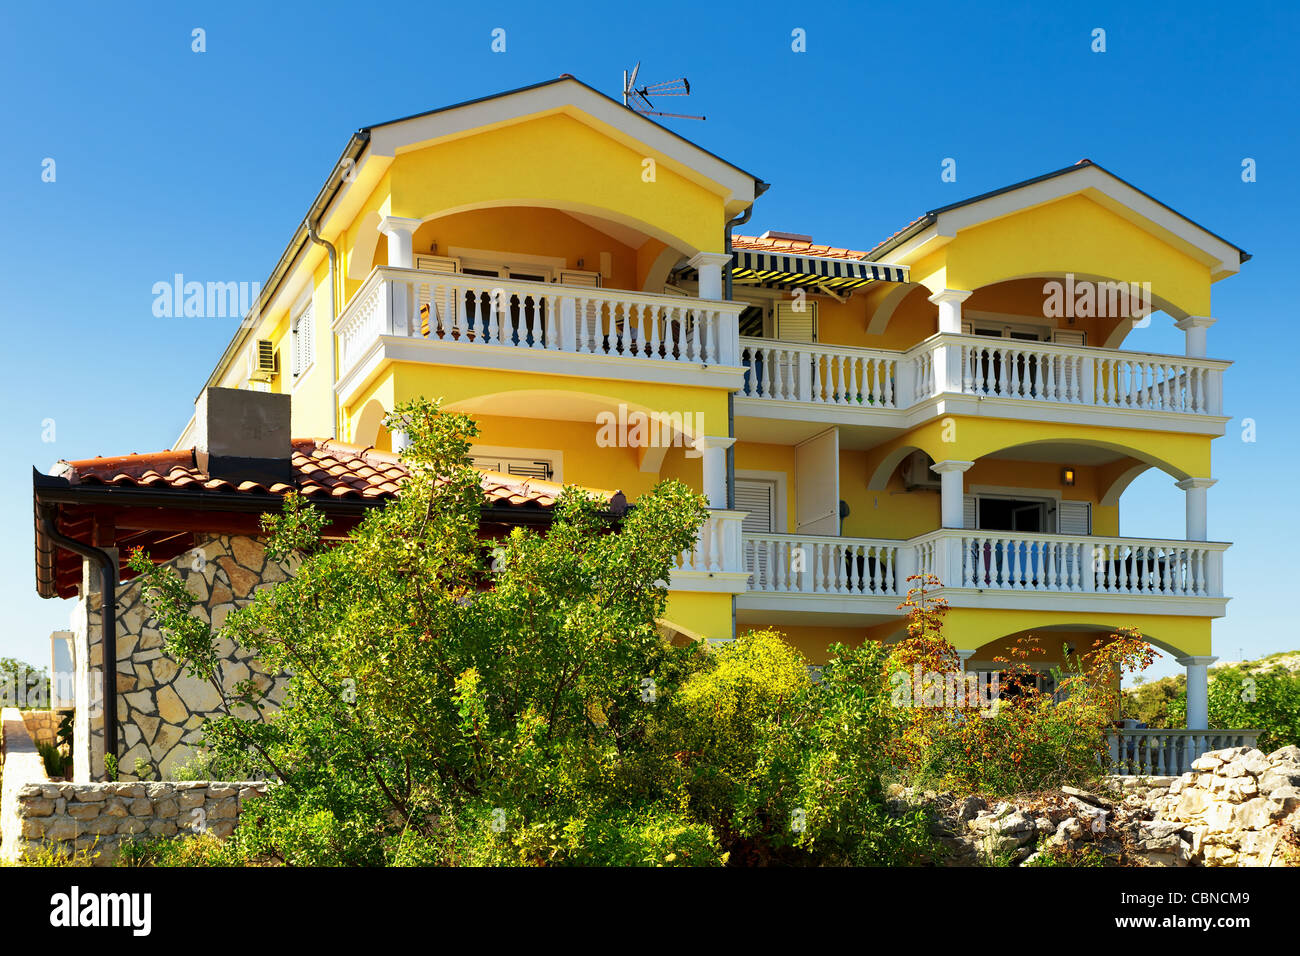 Mountain house for rent - Stock Image